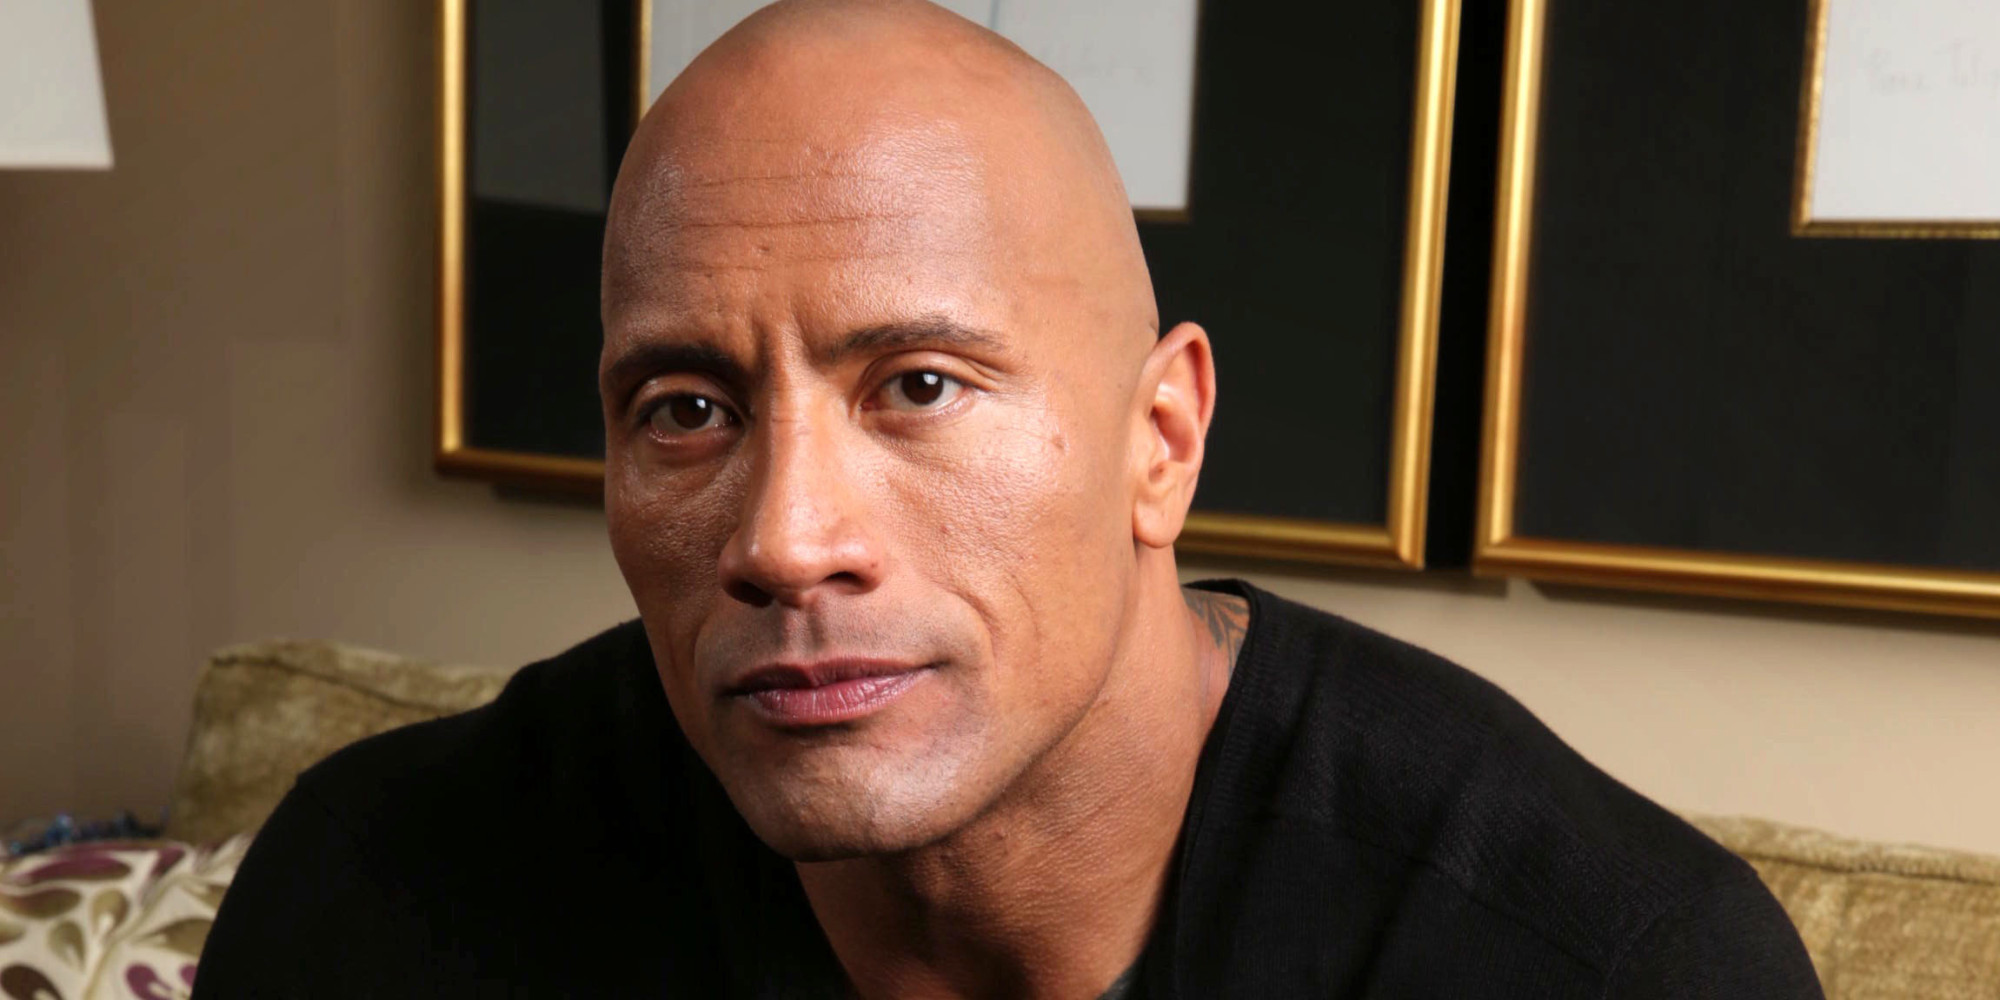 Dwayne Johnson poses for a portrait at the Four Seasons on Saturday, March 23, 2013 in Los Angeles. (Photo by Eric Charbonneau/Invision/AP)